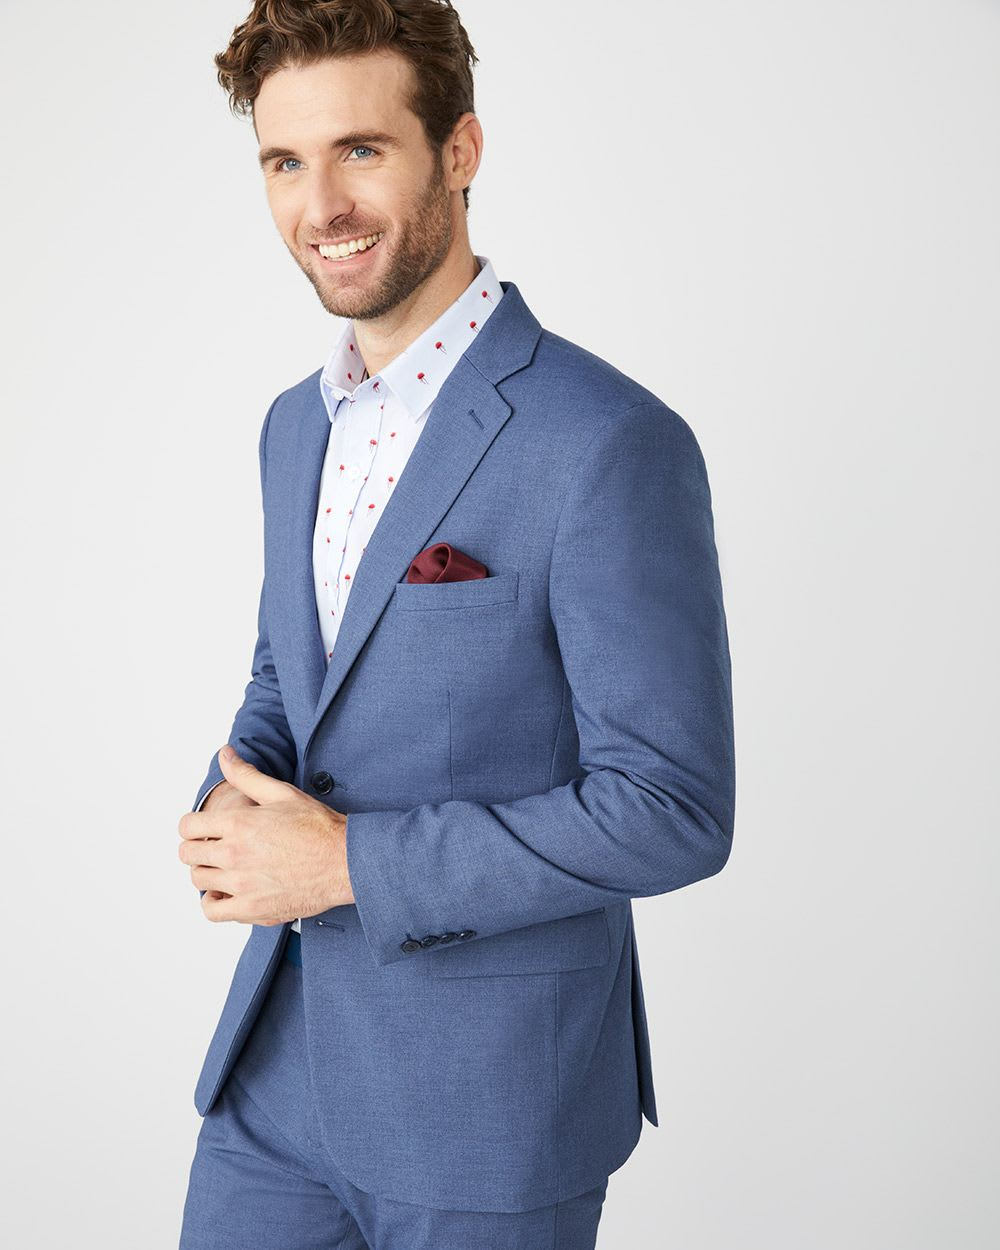 Tailored Fit Crown blue suit blazer with COOLMAX(TM) technology